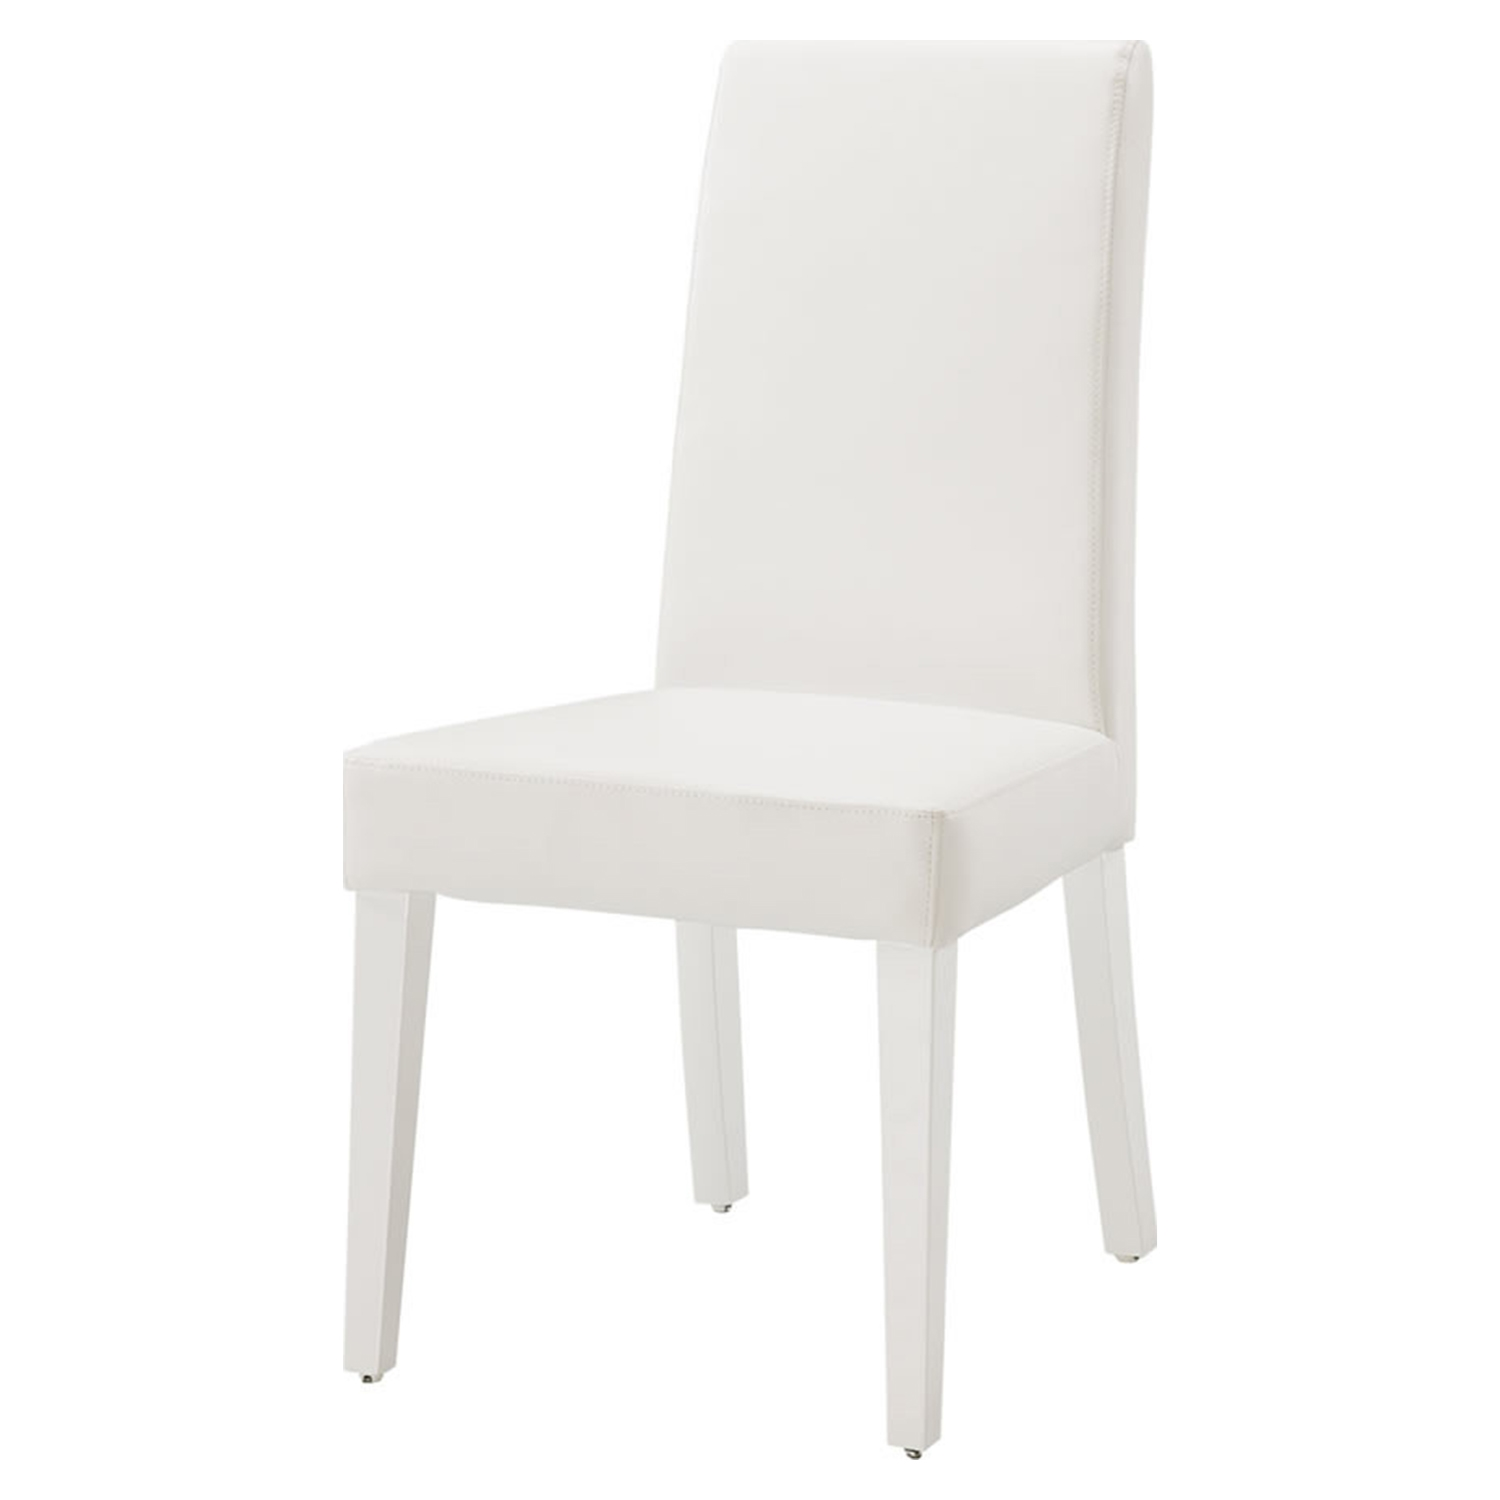 Tristan Dining Chair, Glossy White